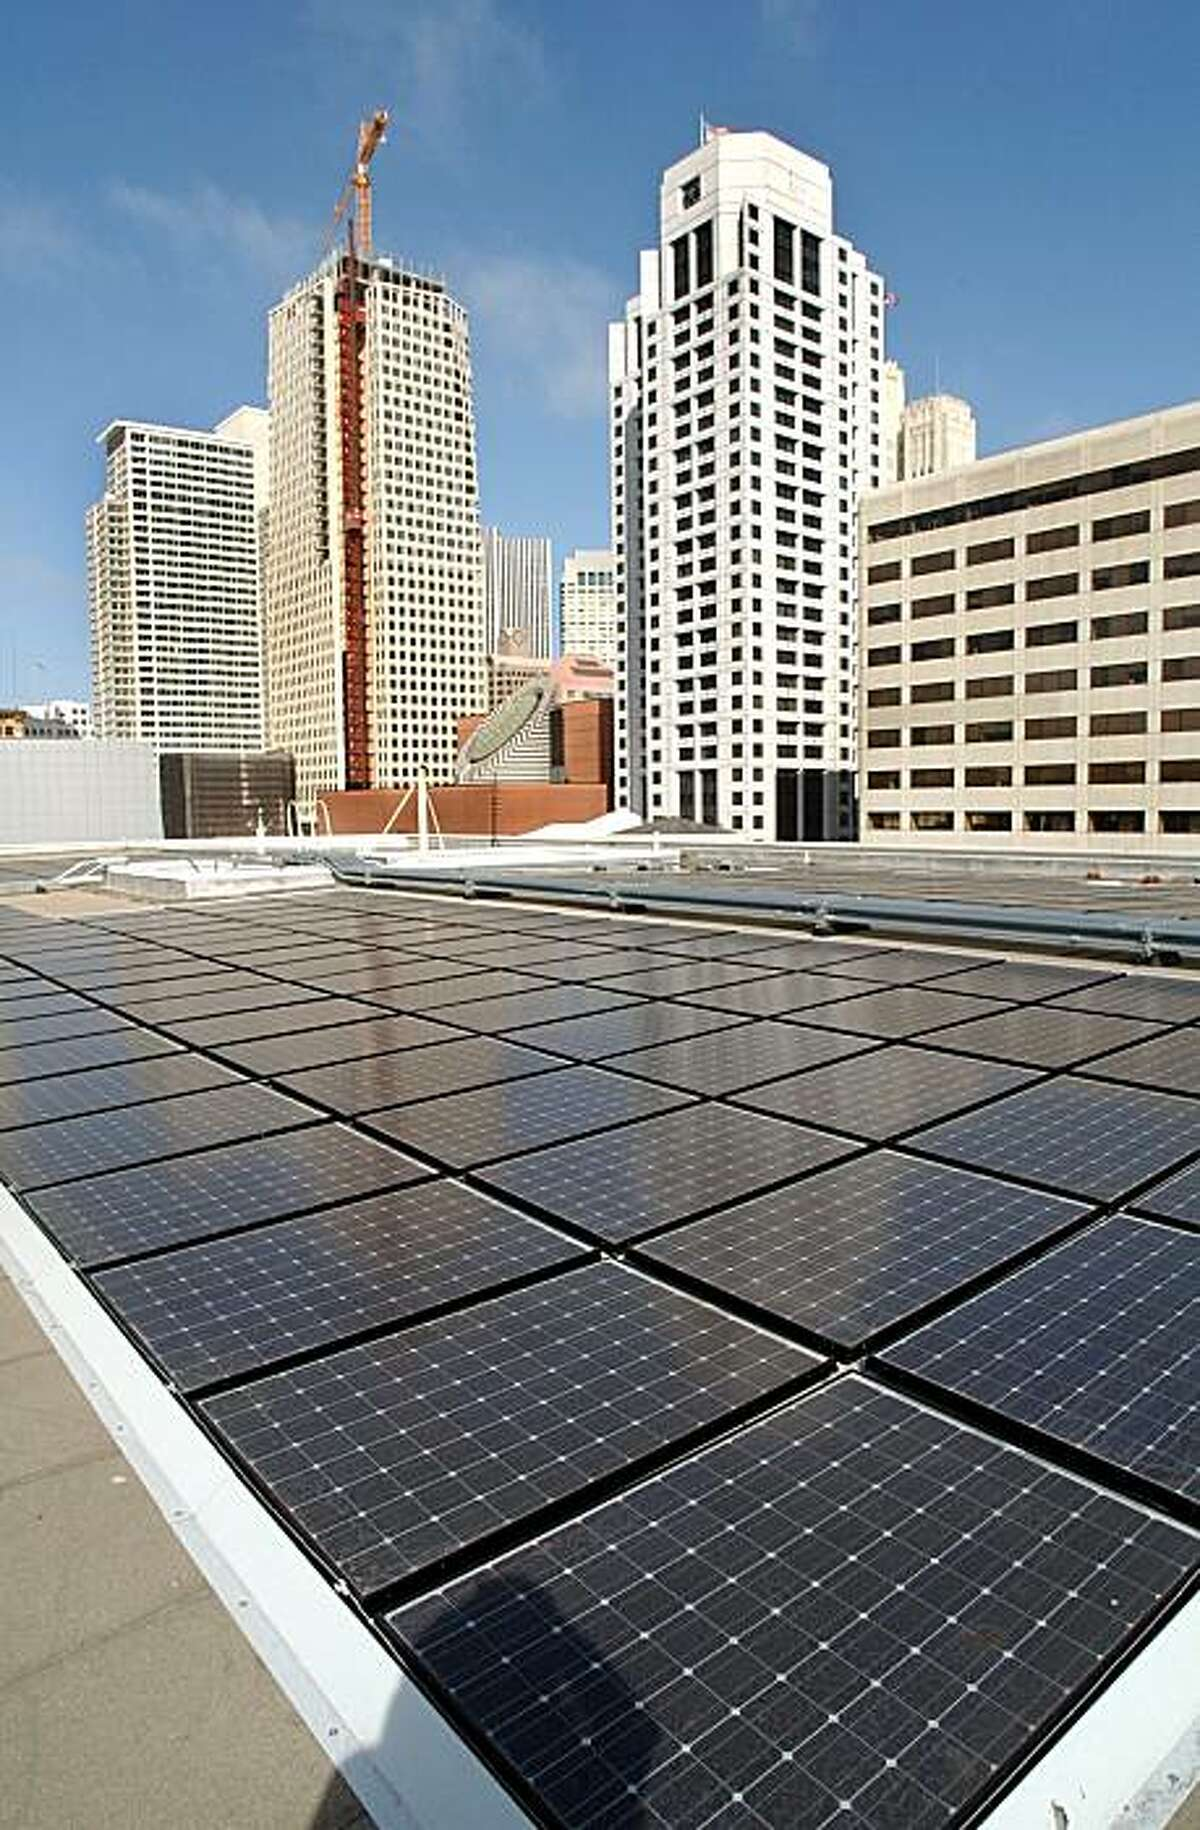 The city of San Francisco upped its commitment to solar power this week, choosing a local firm to build what will be the countryís third largest solar photovoltaic system. Five years ago, these solar were installed atop the Esplanade side of Moscone Center.